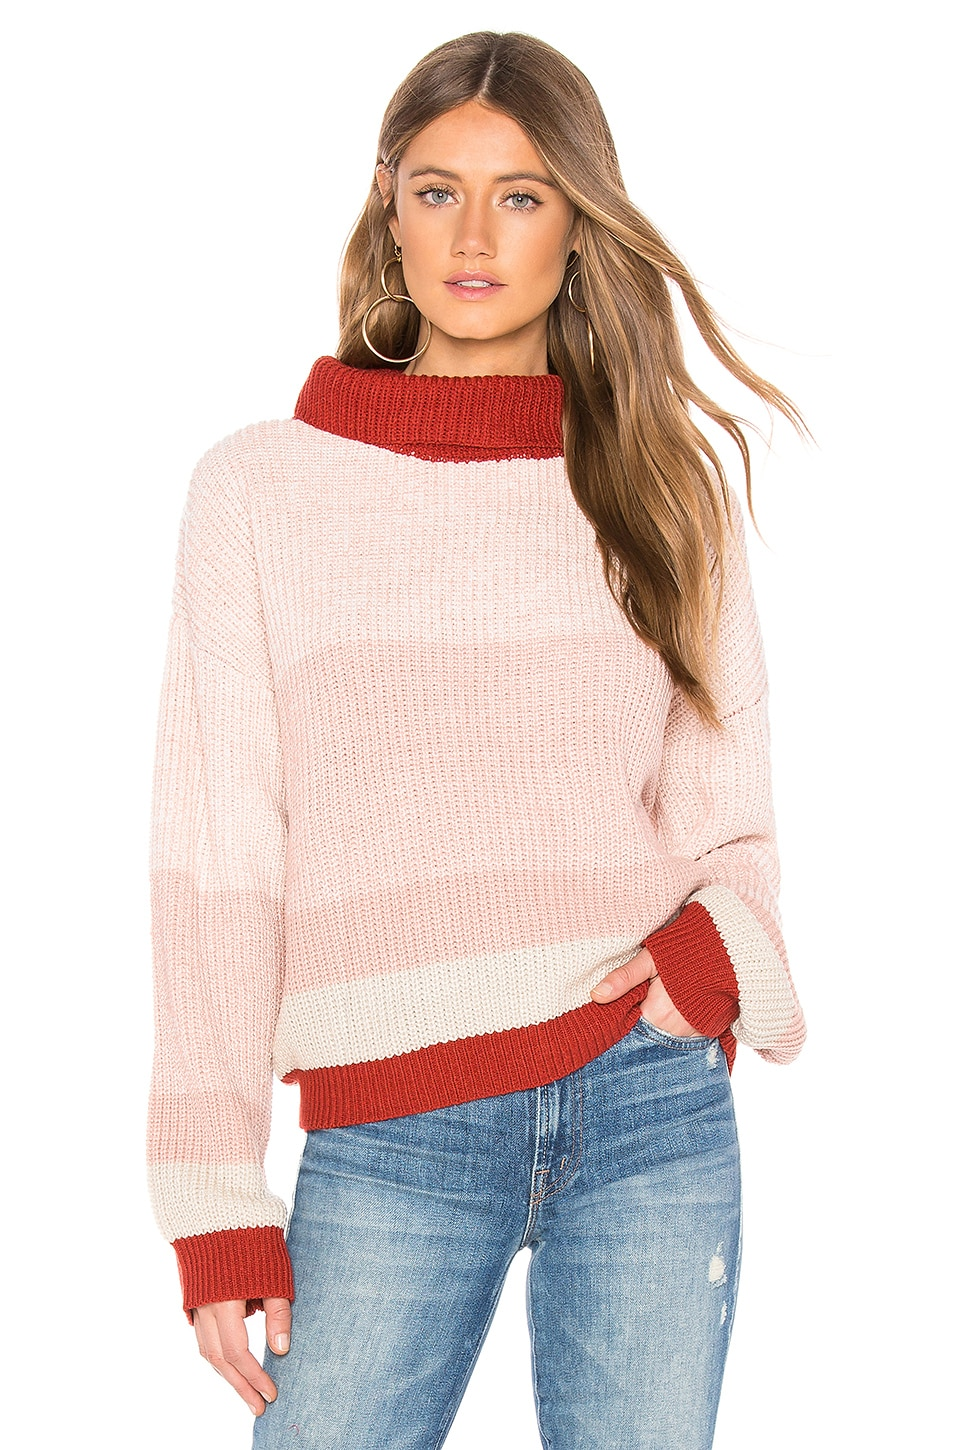 CALLAHAN Nathalee Sweater in Pink